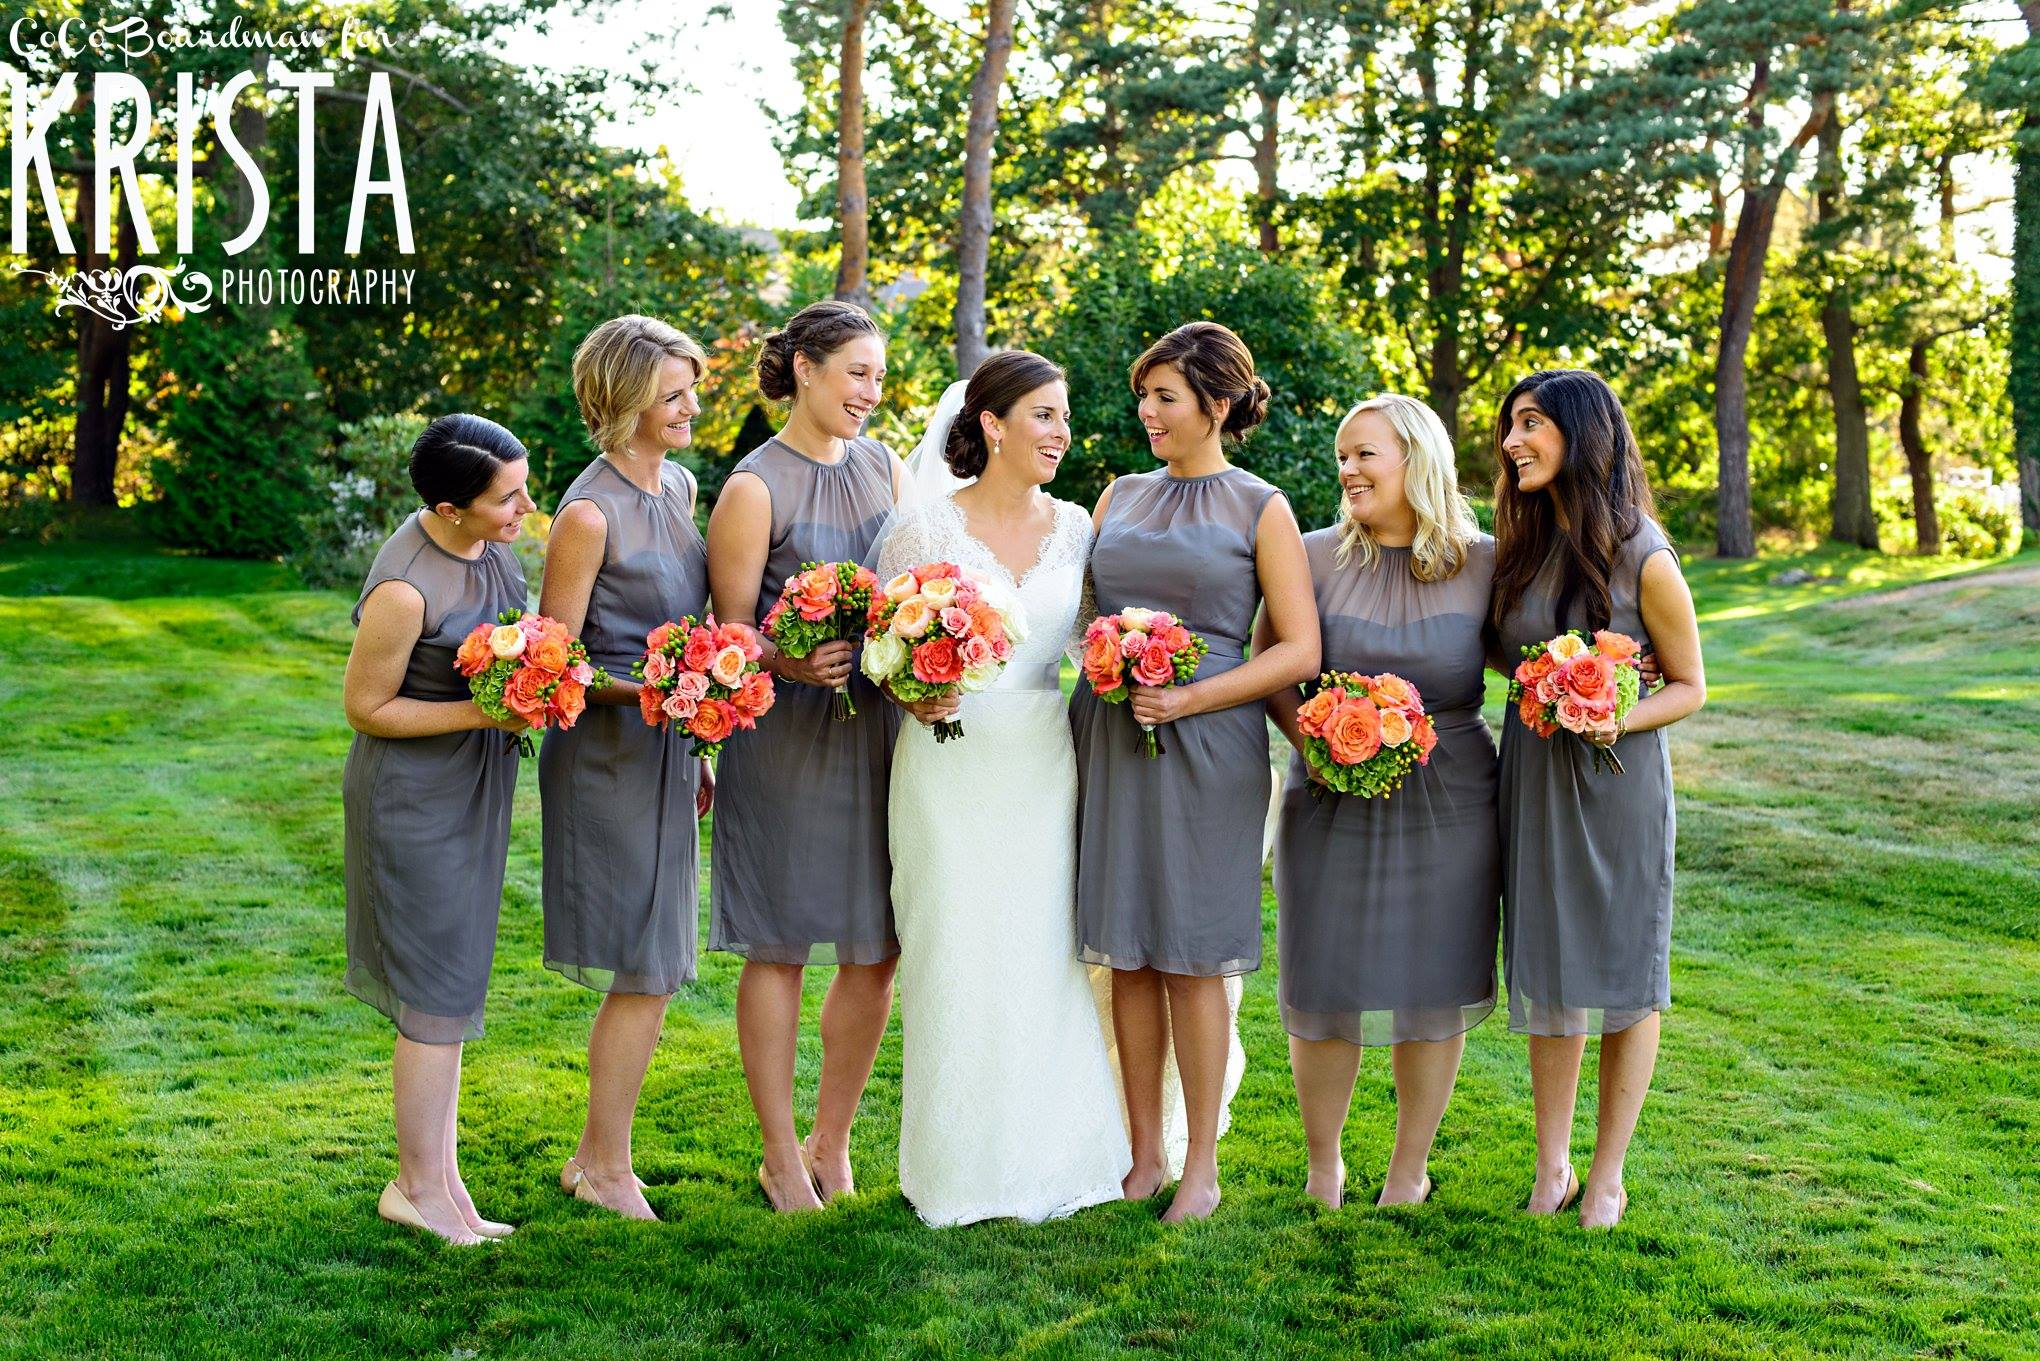 coral-bridal-bouquet-gray-bridesmaid-dresses-new-castle-nh-wedding-painter-ben-keys-wed-on-canvas